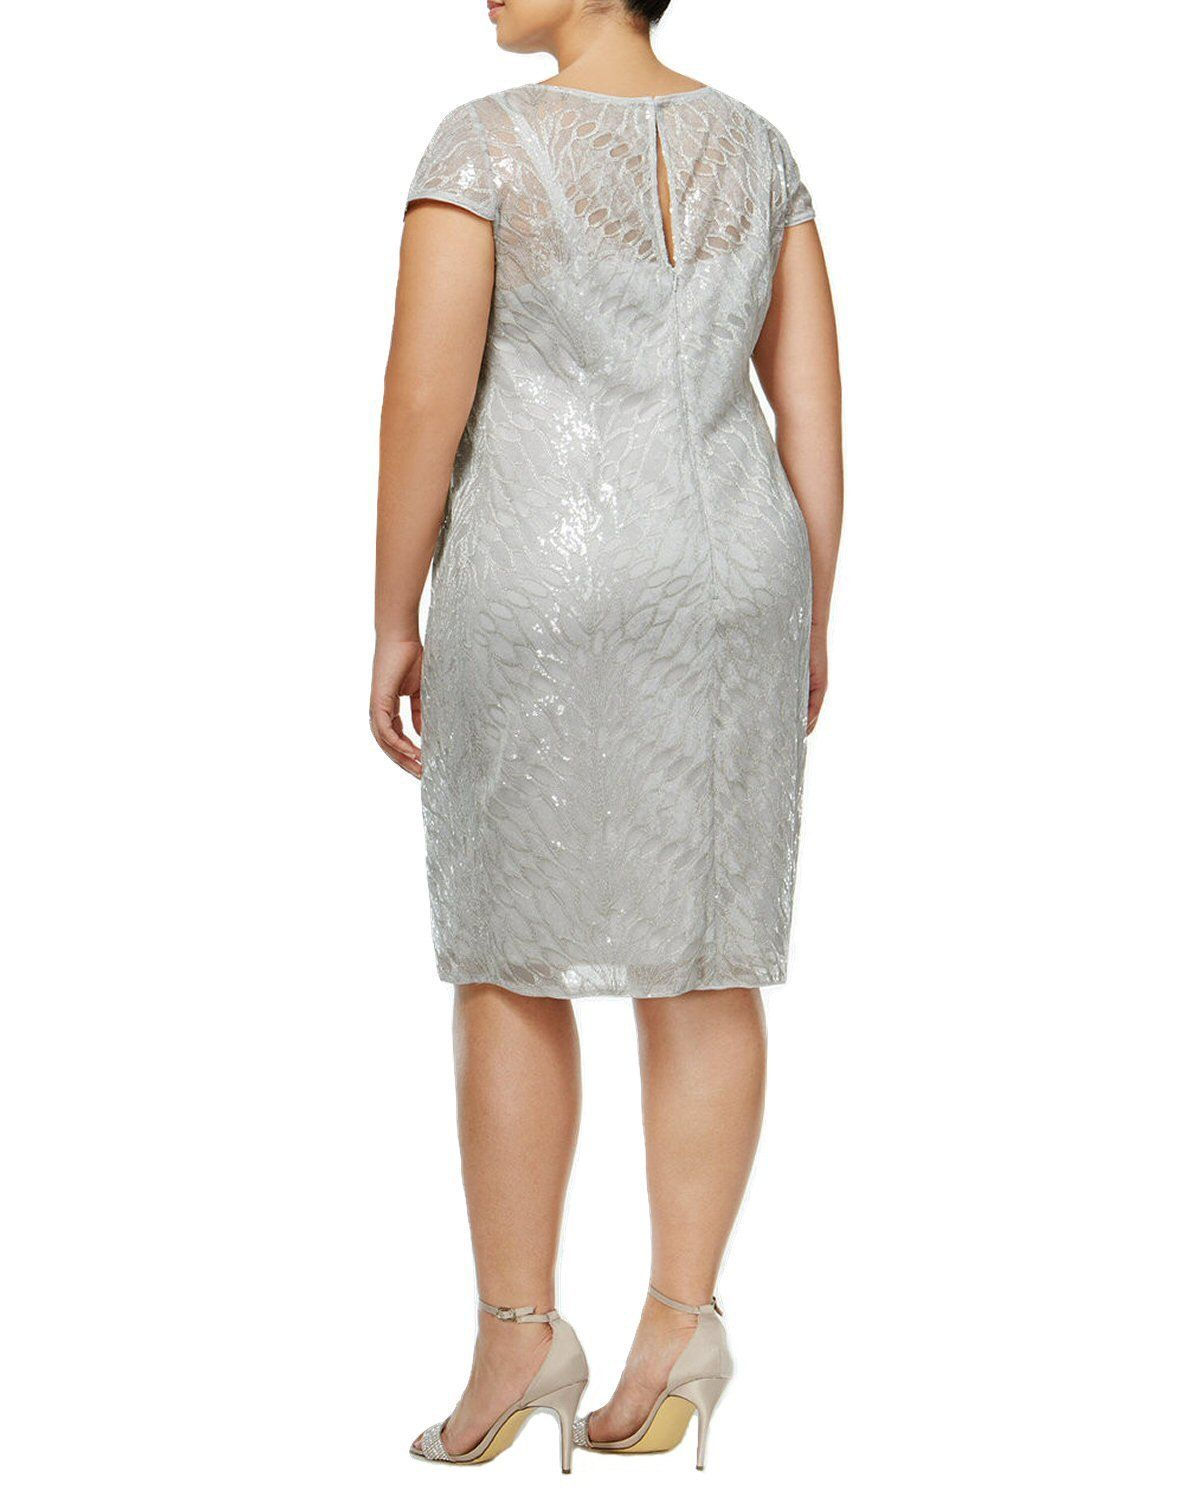 9595232694a49f Adrianna Papell Womens Plus Metallic Sequined Cocktail Dress Silver 16W      Click on the image for additional details. (This is an affiliate link)   ...